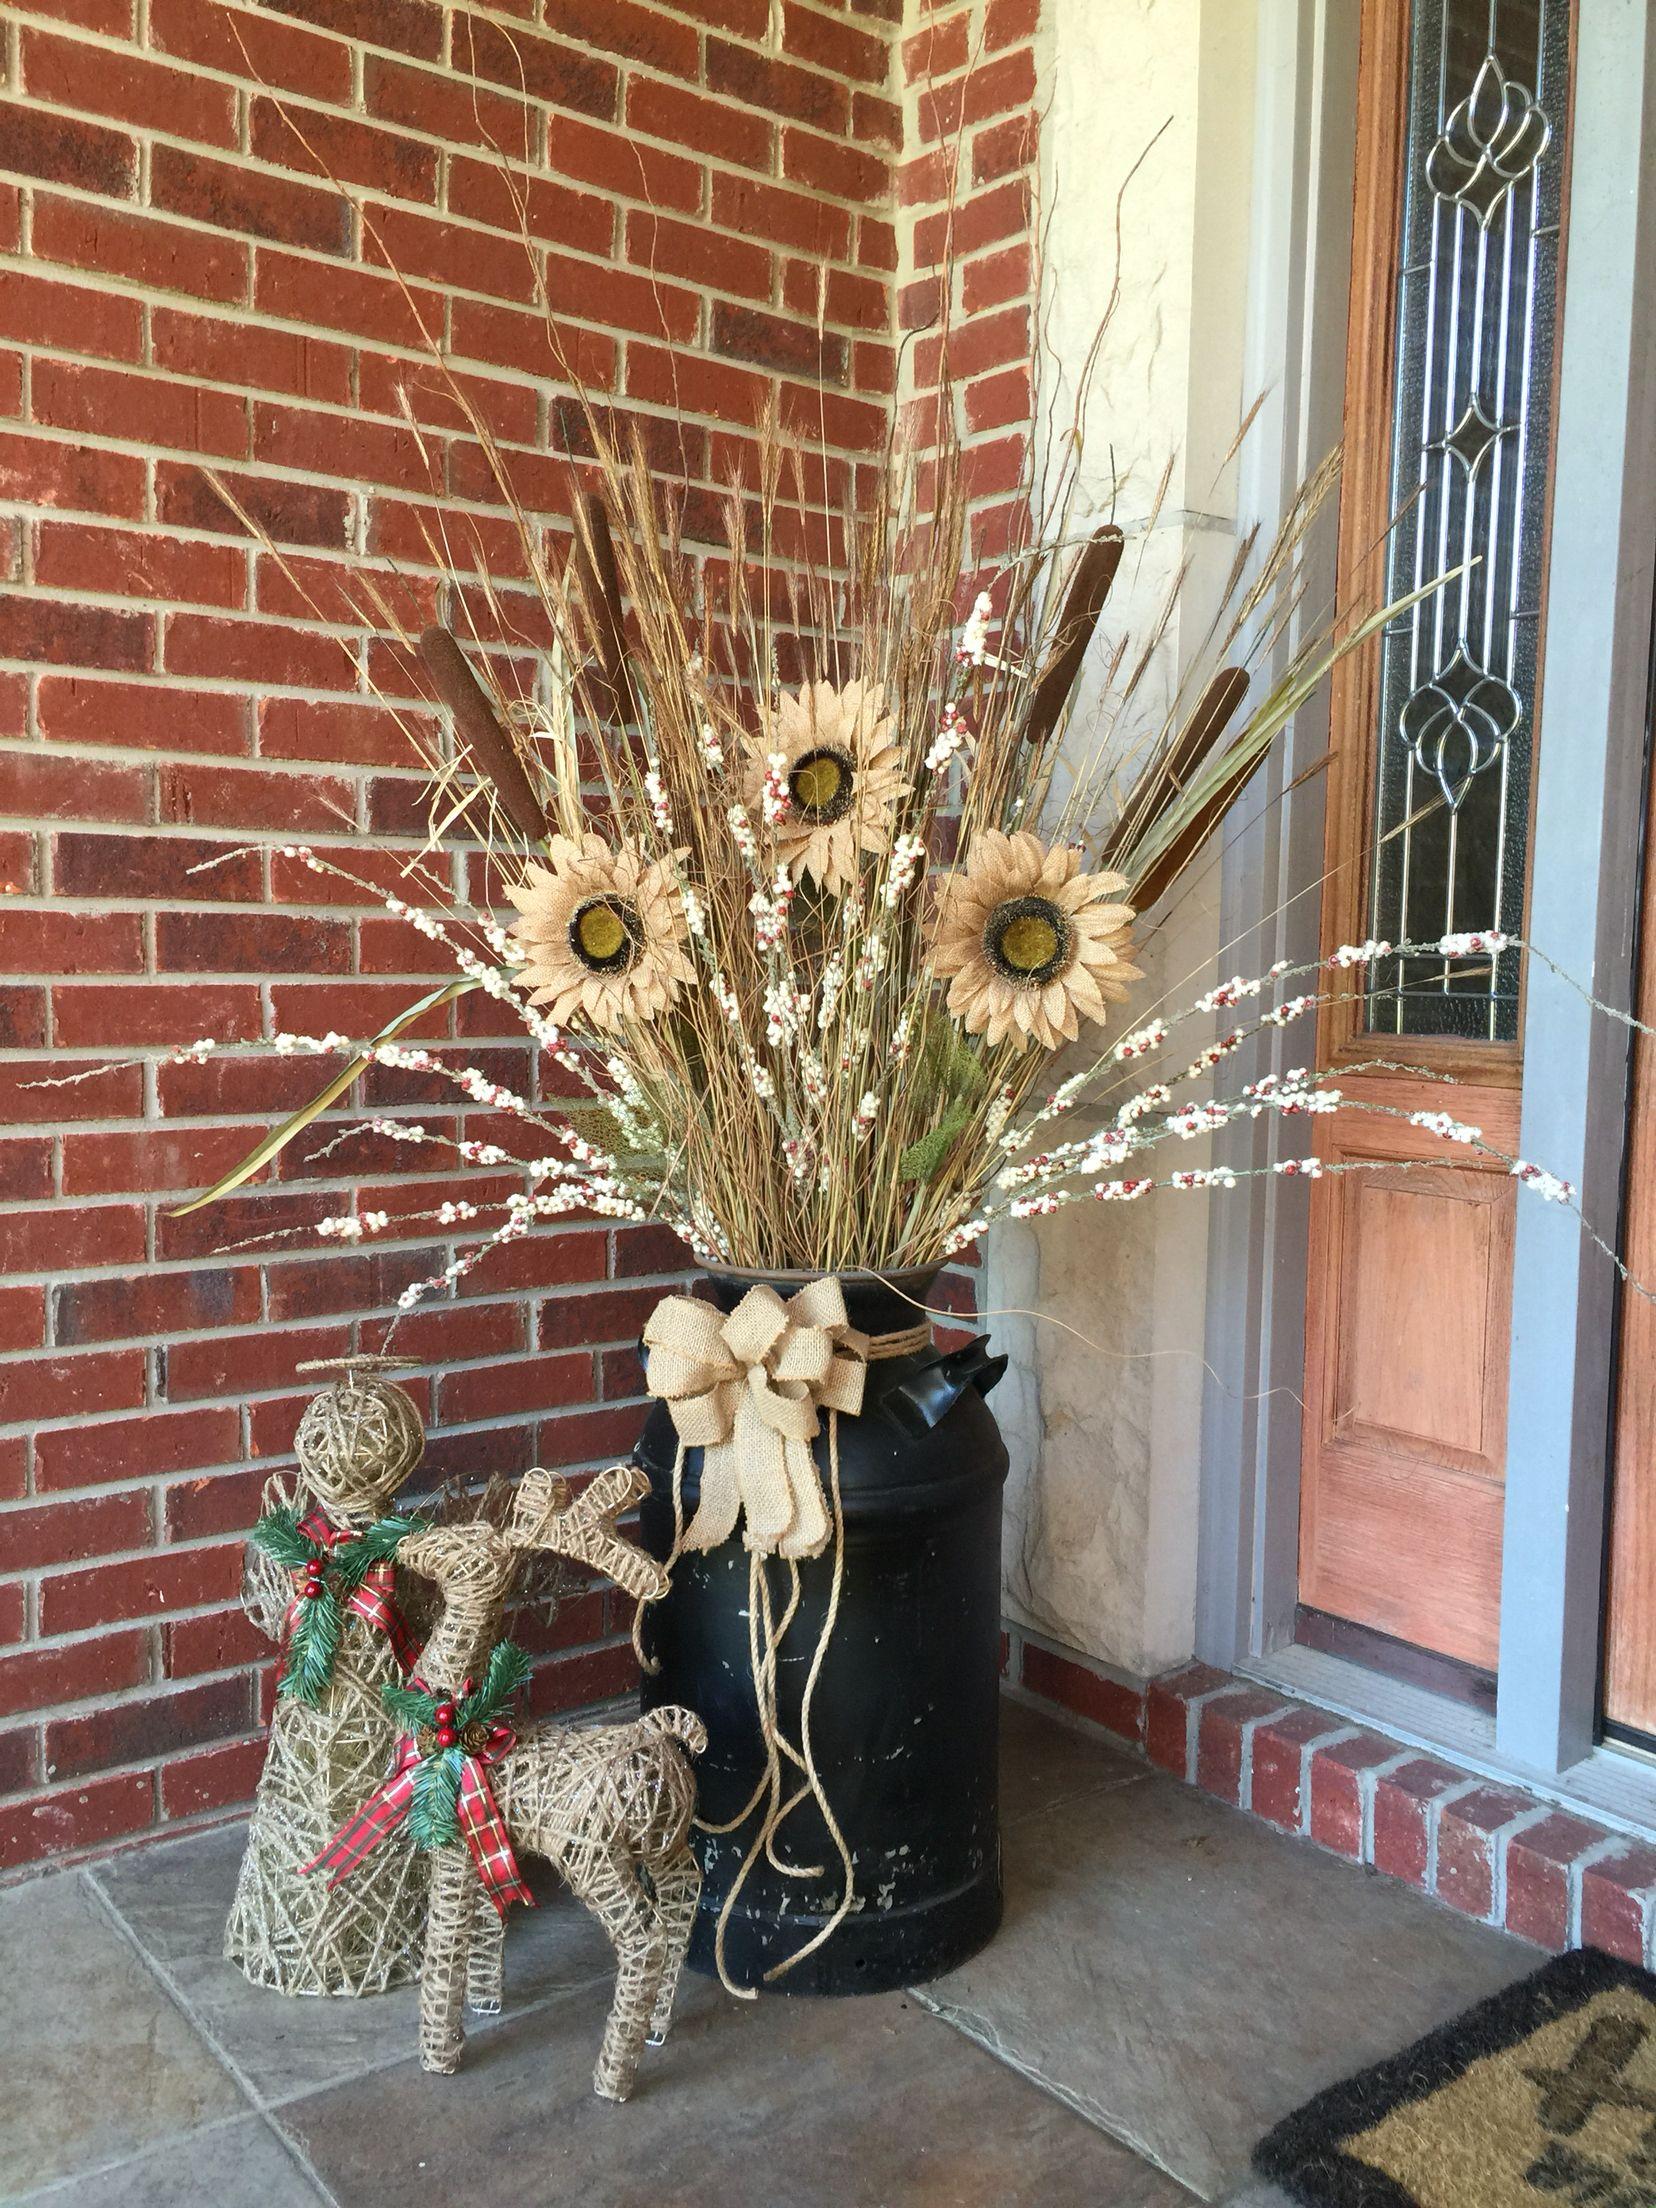 Old milk can, front porch decor, sunflowers Front porch